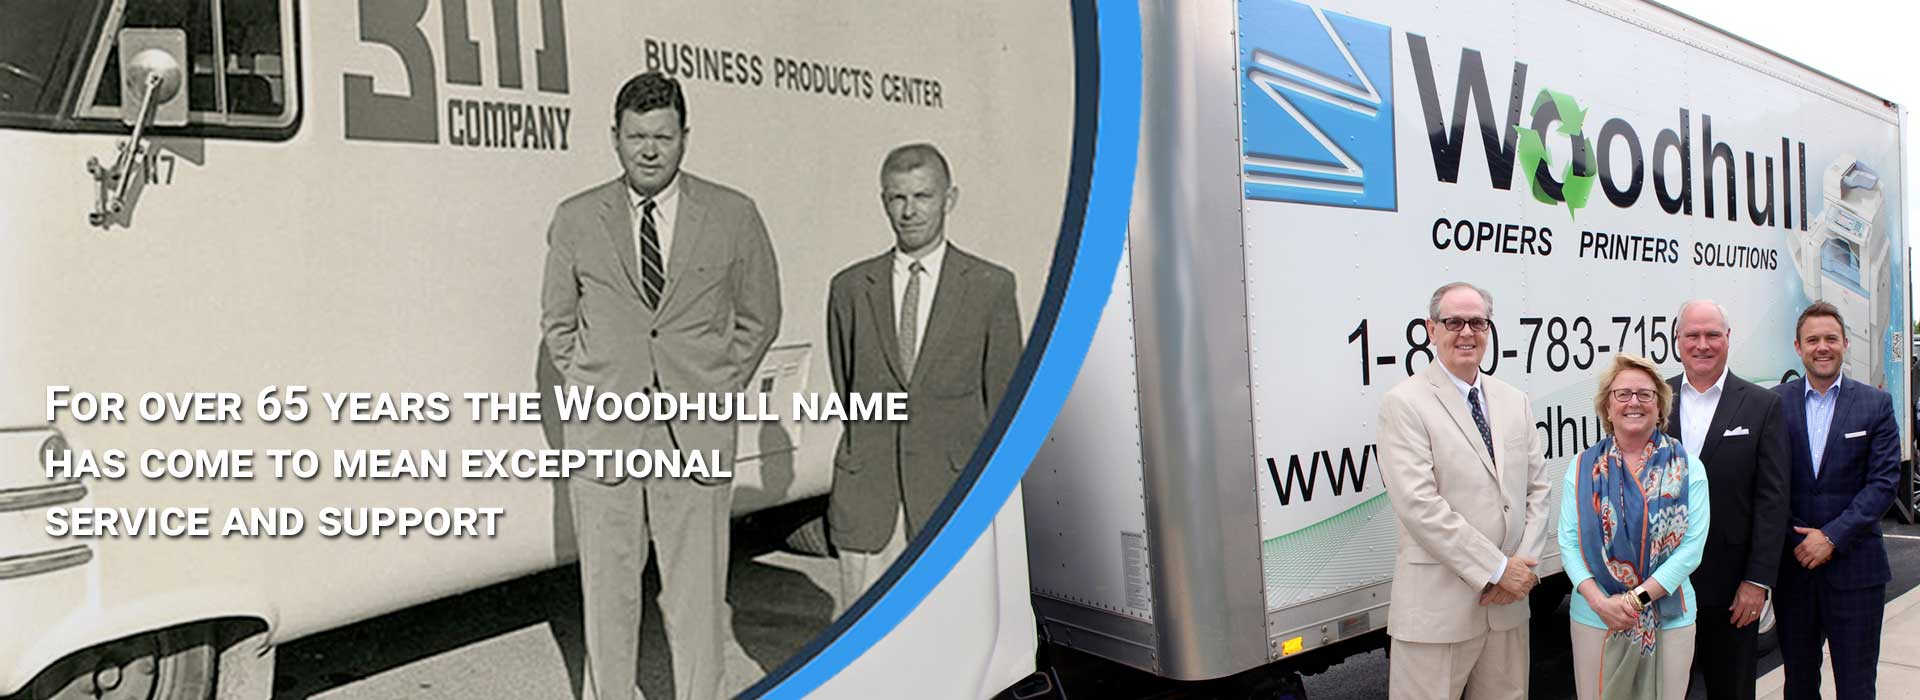 For over 65 years the Woodhull name has come to mean exceptional service and support